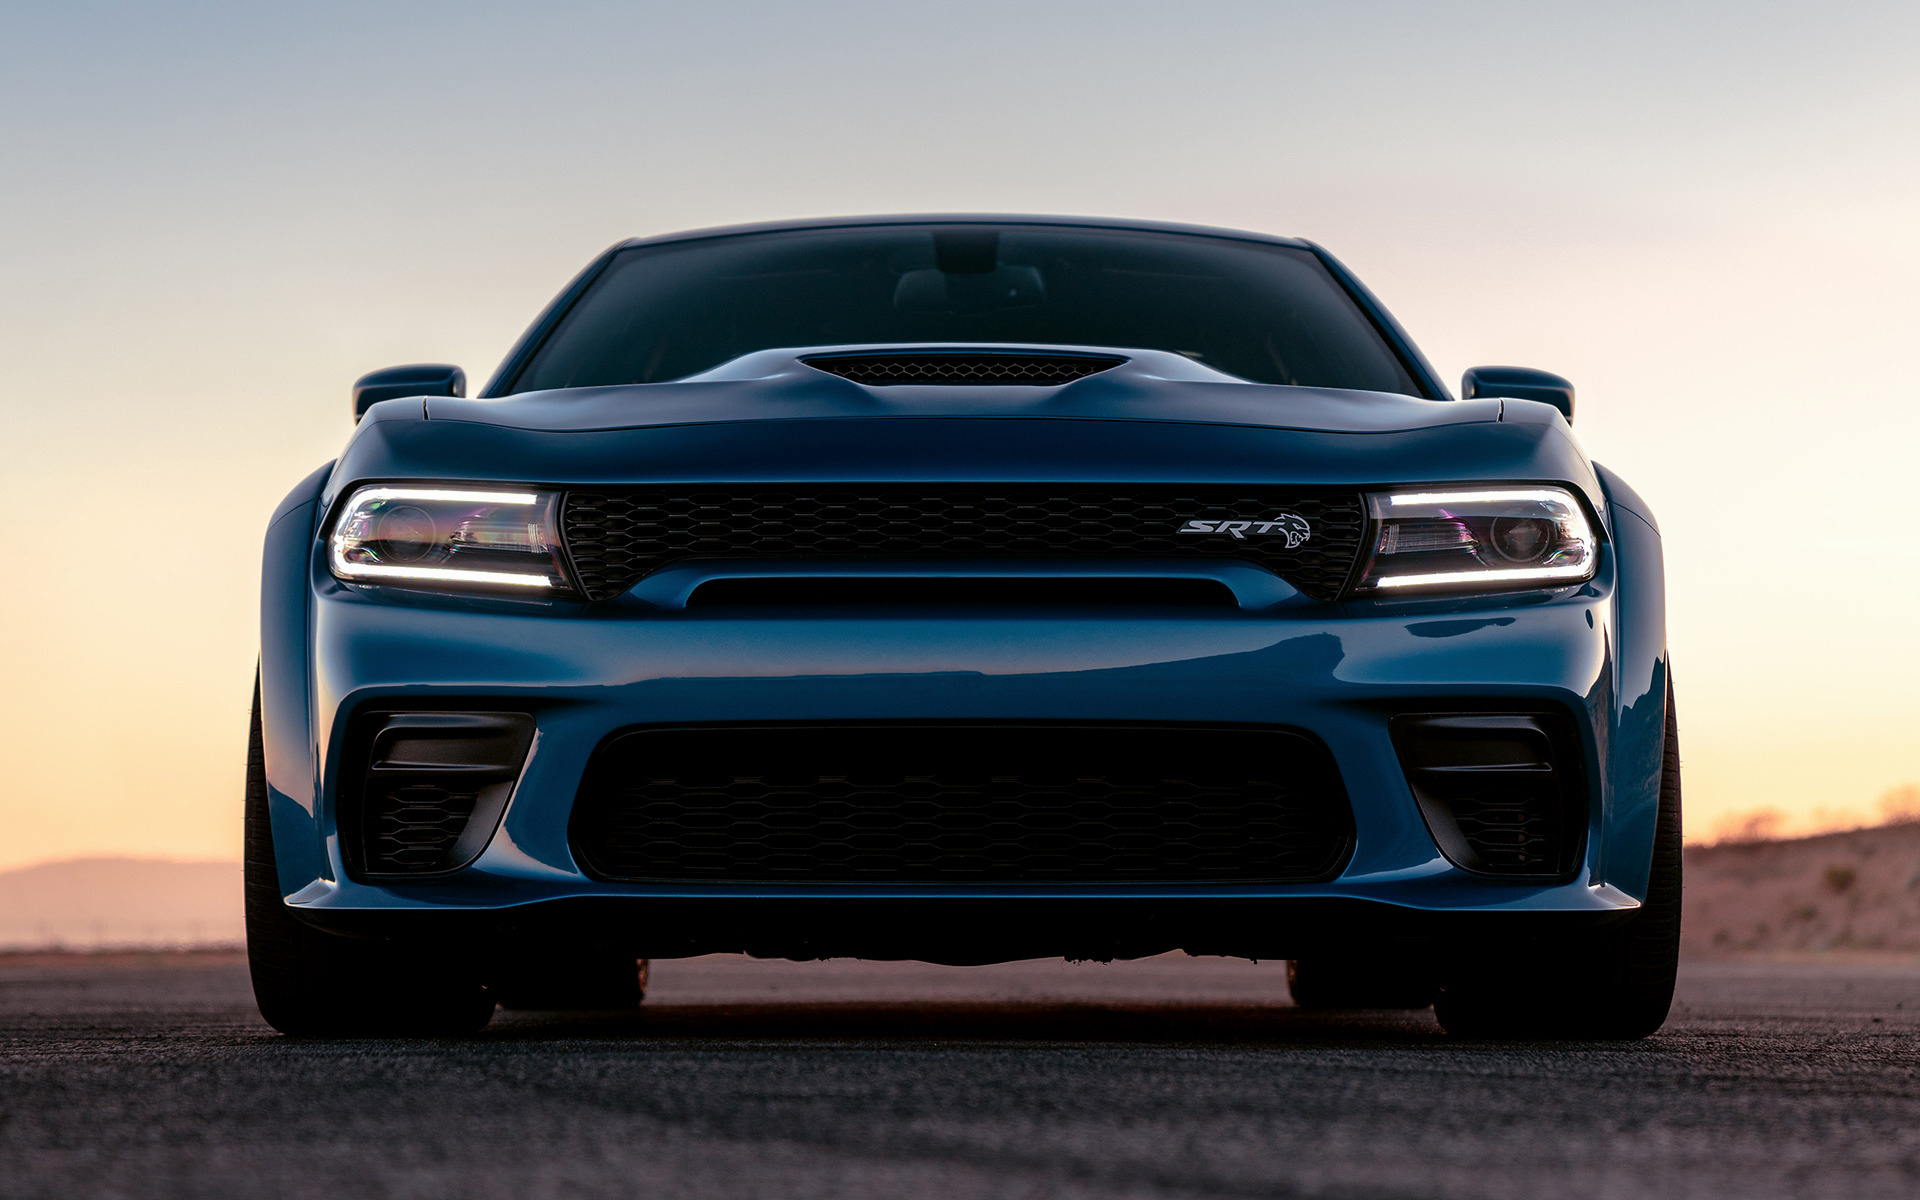 Charger Srt Hellcat >> 2020 Dodge Charger SRT Hellcat Widebody - Wallpapers and ...